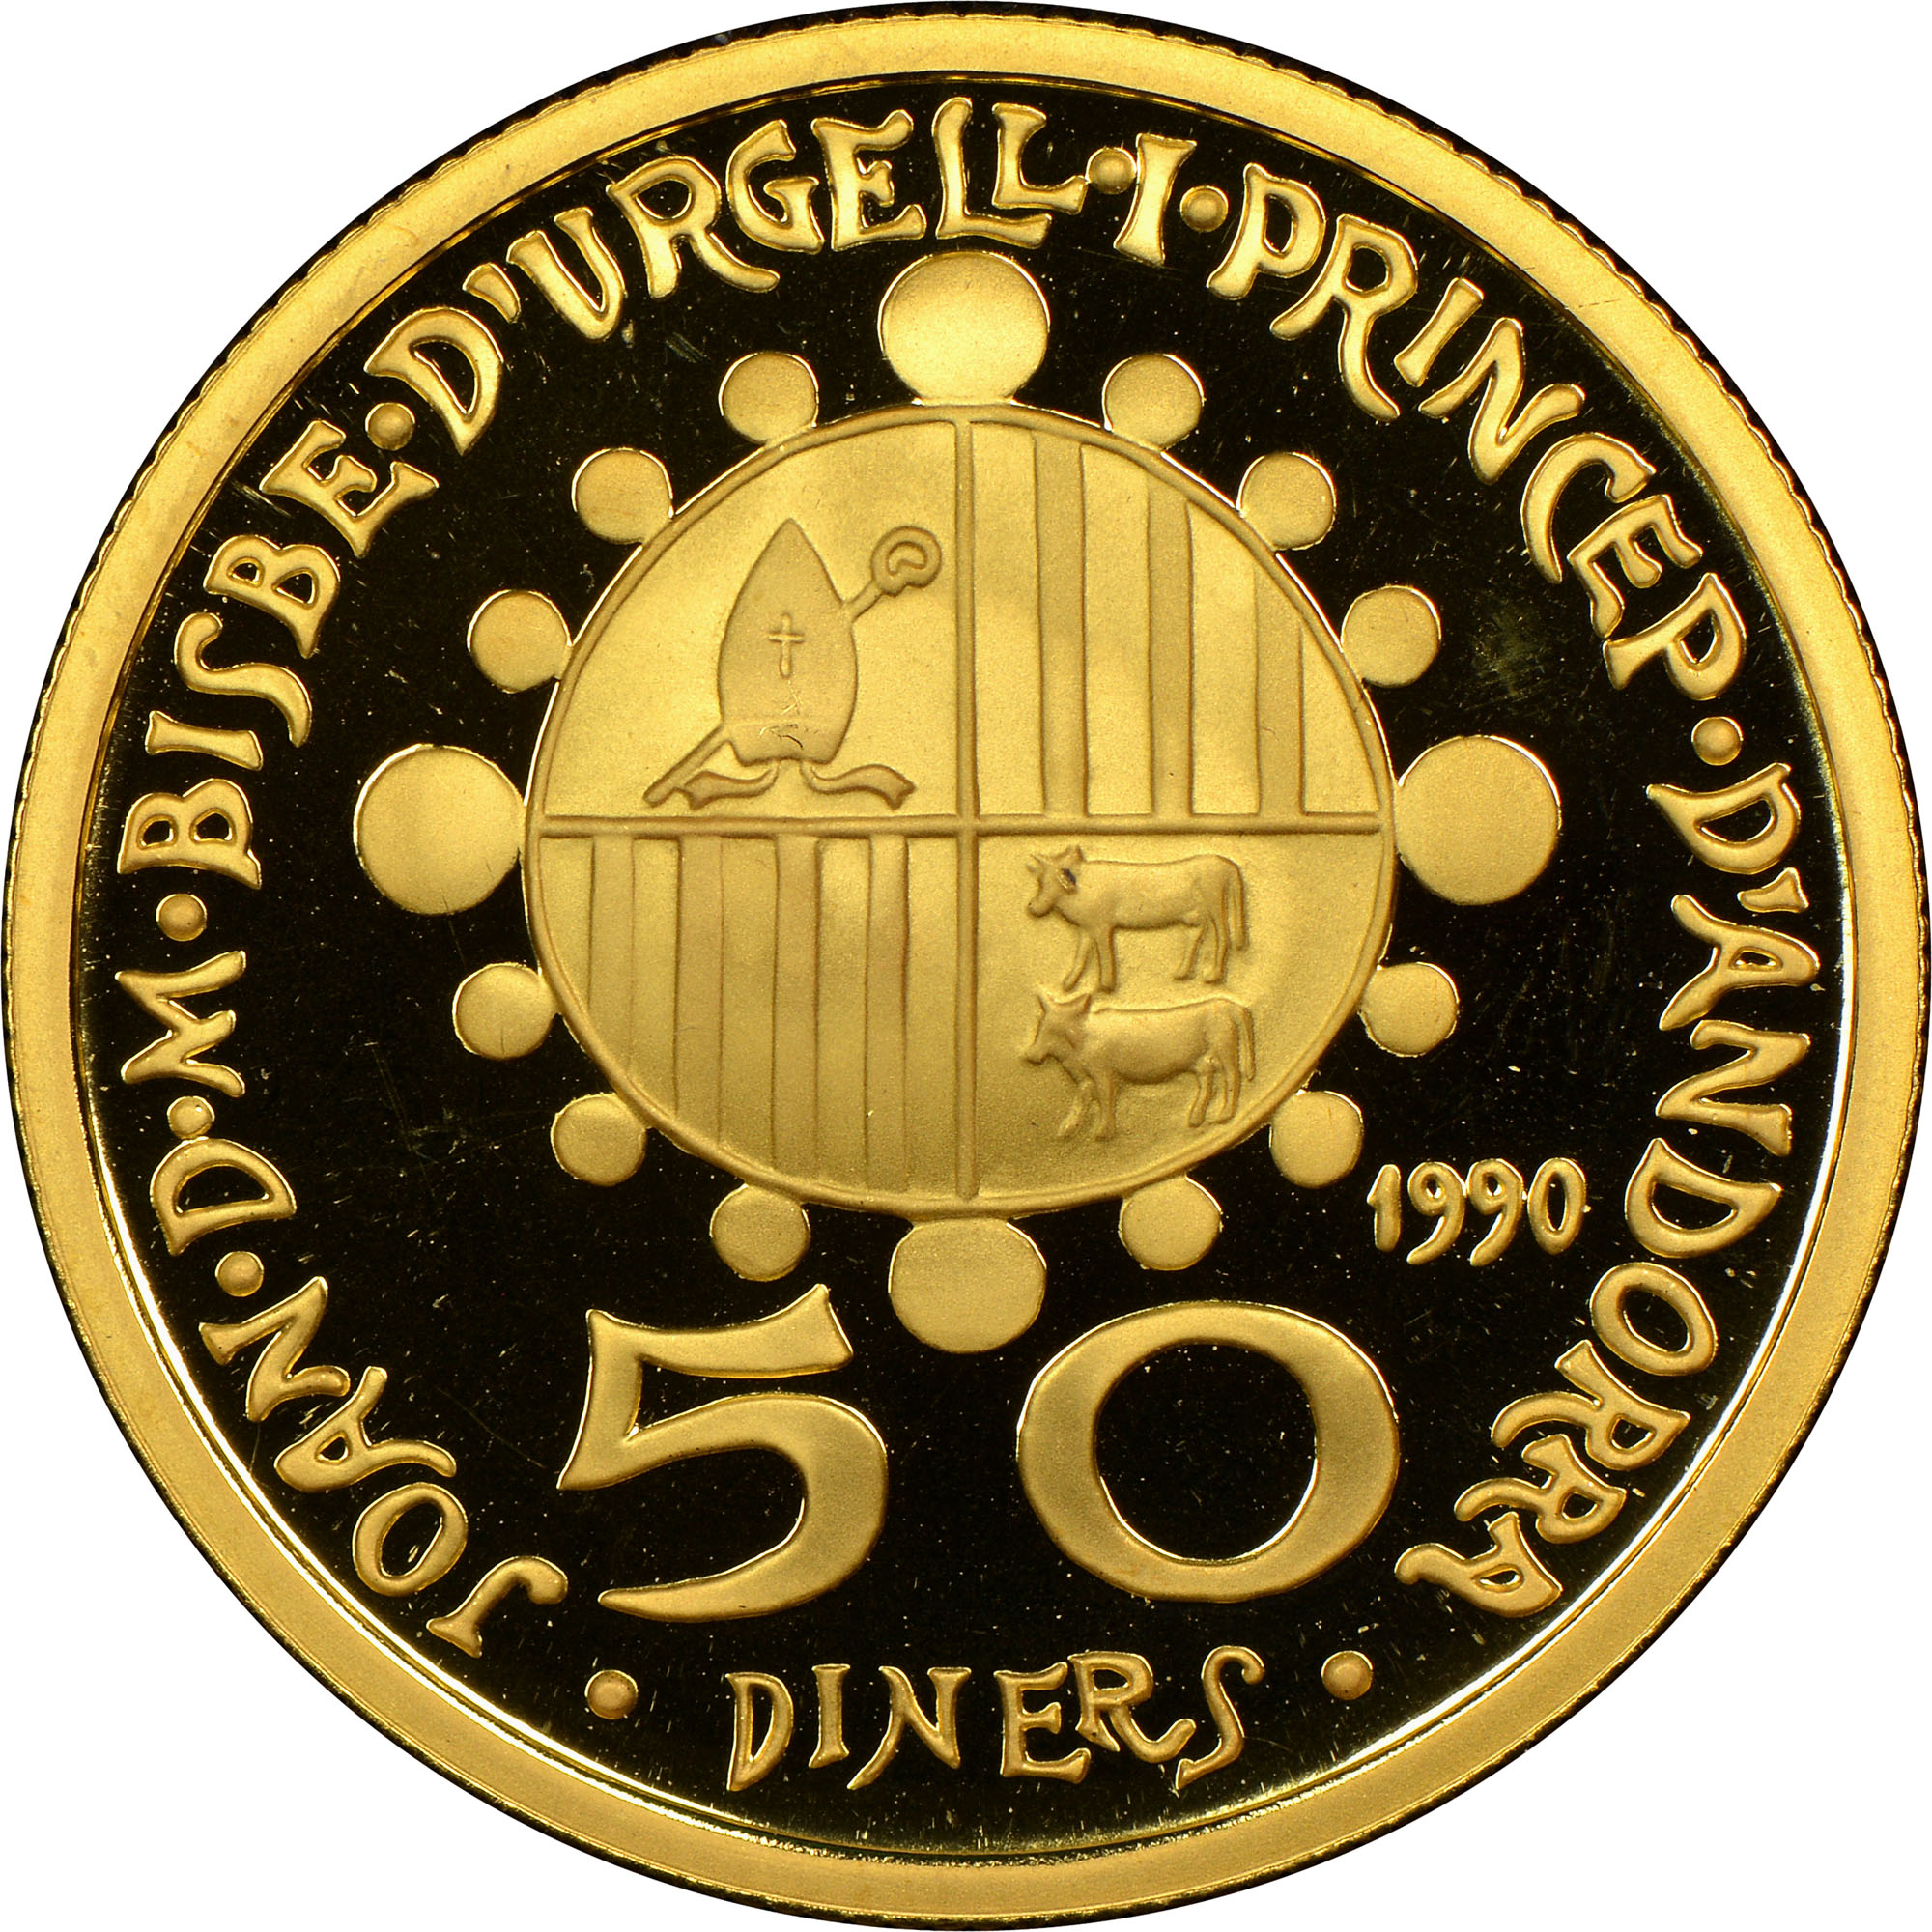 1990 Andorra 50 Diners obverse